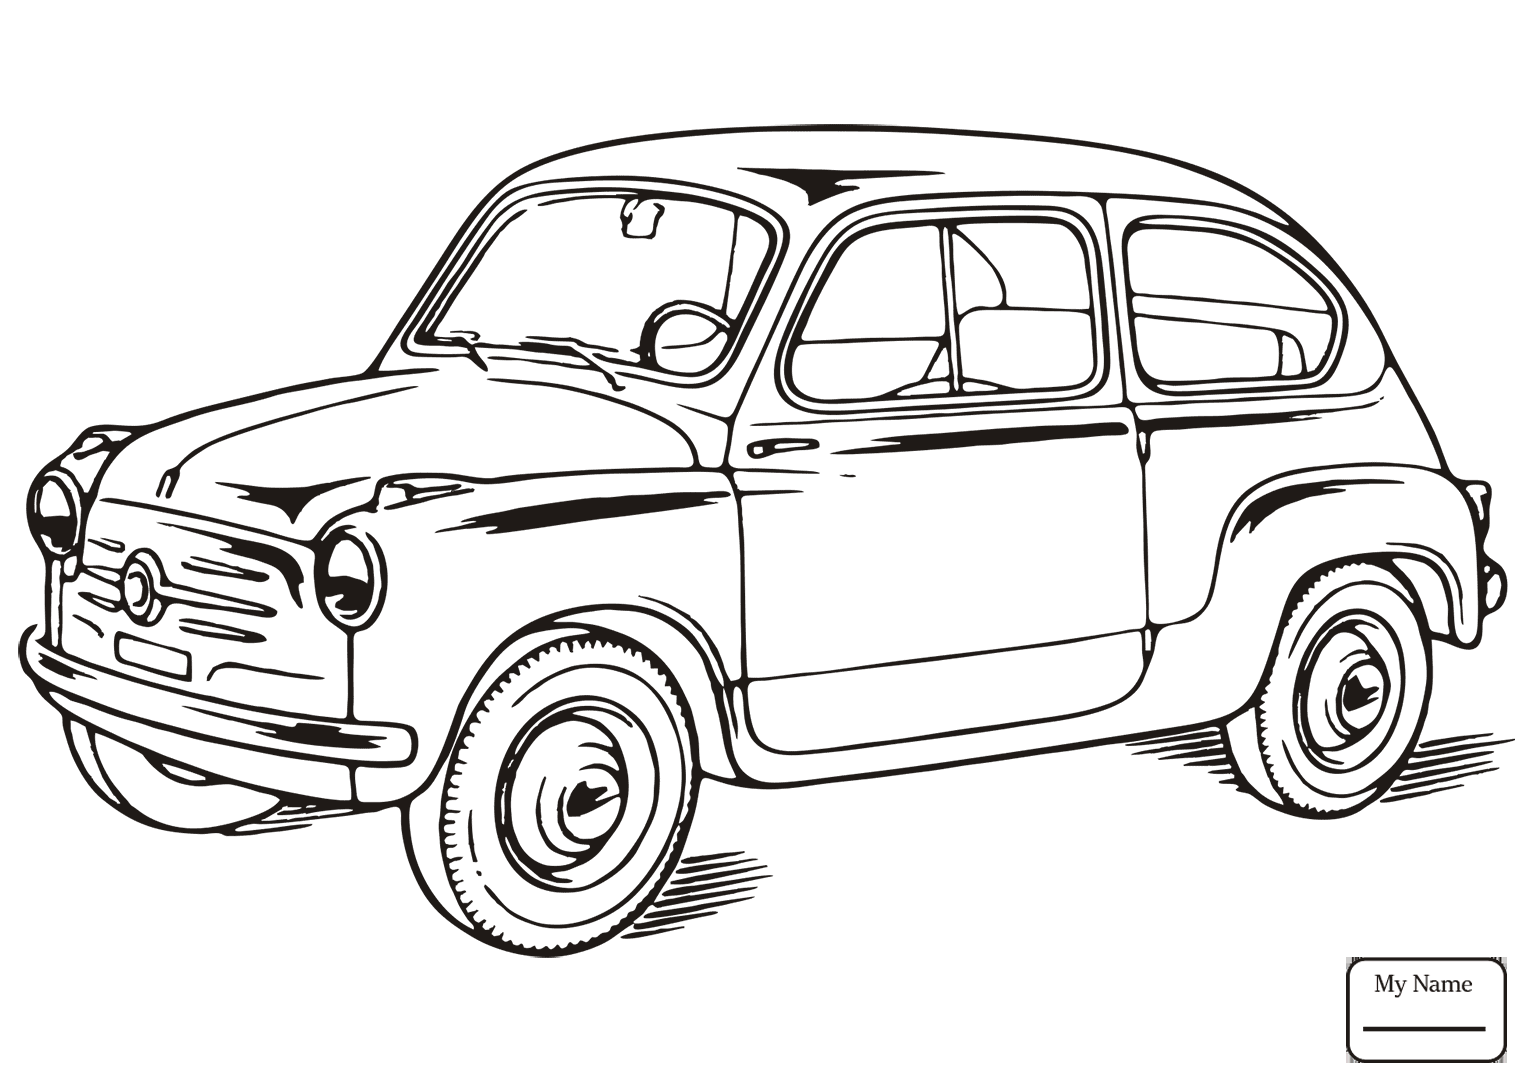 toyota car coloring pages toyota coloring pages at getcoloringscom free printable coloring toyota pages car